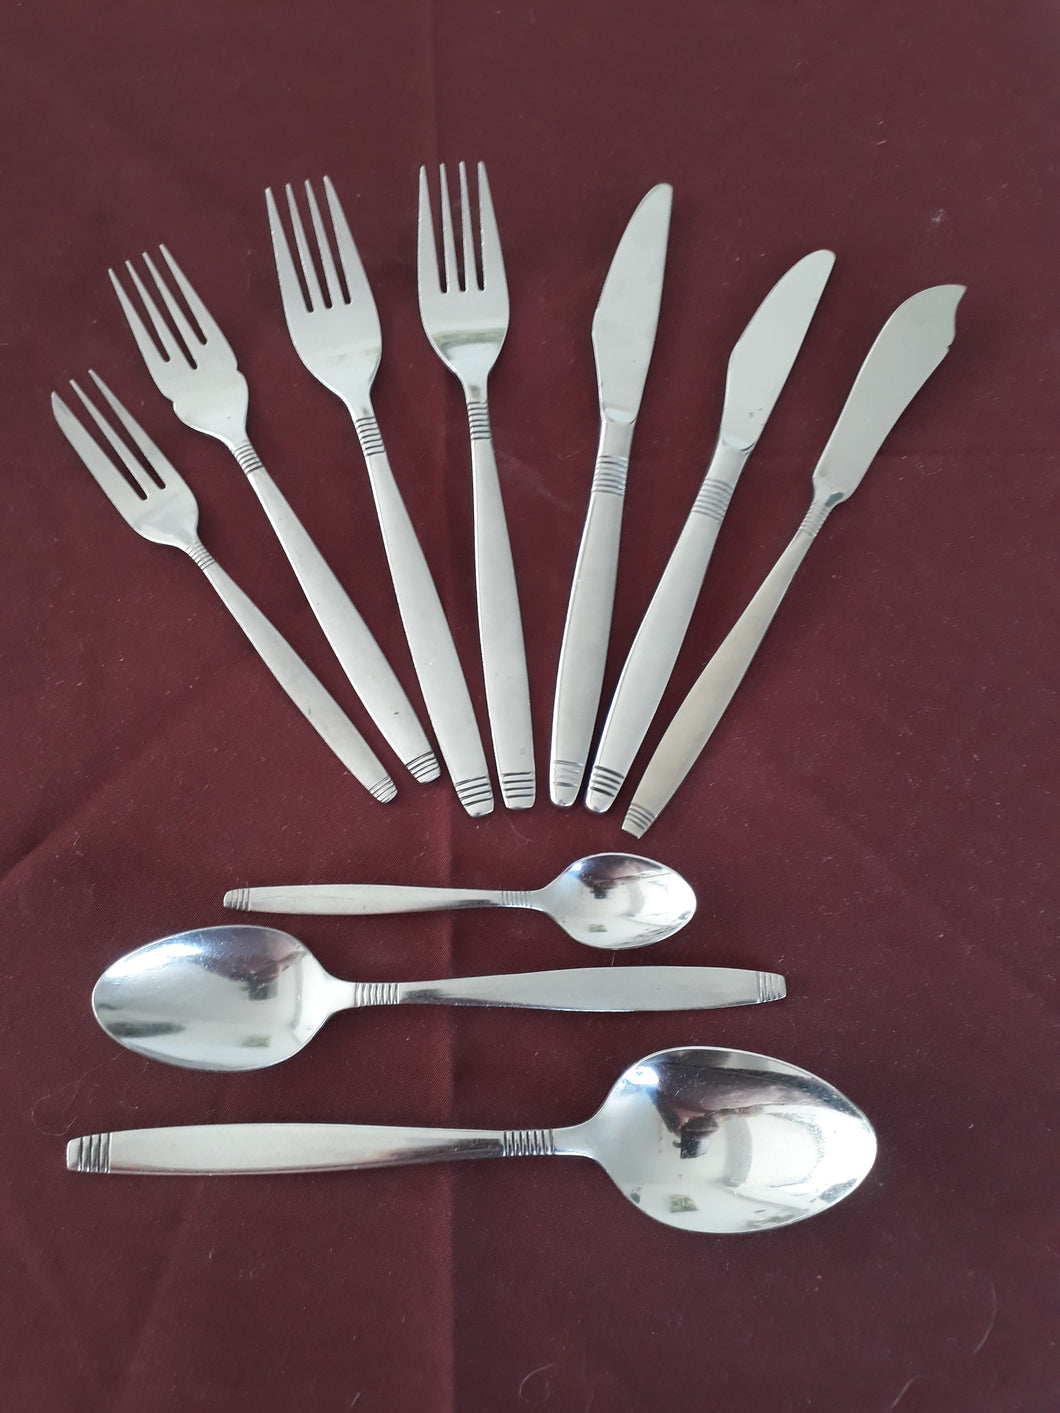 Dessert Fork from the Style cutlery collection